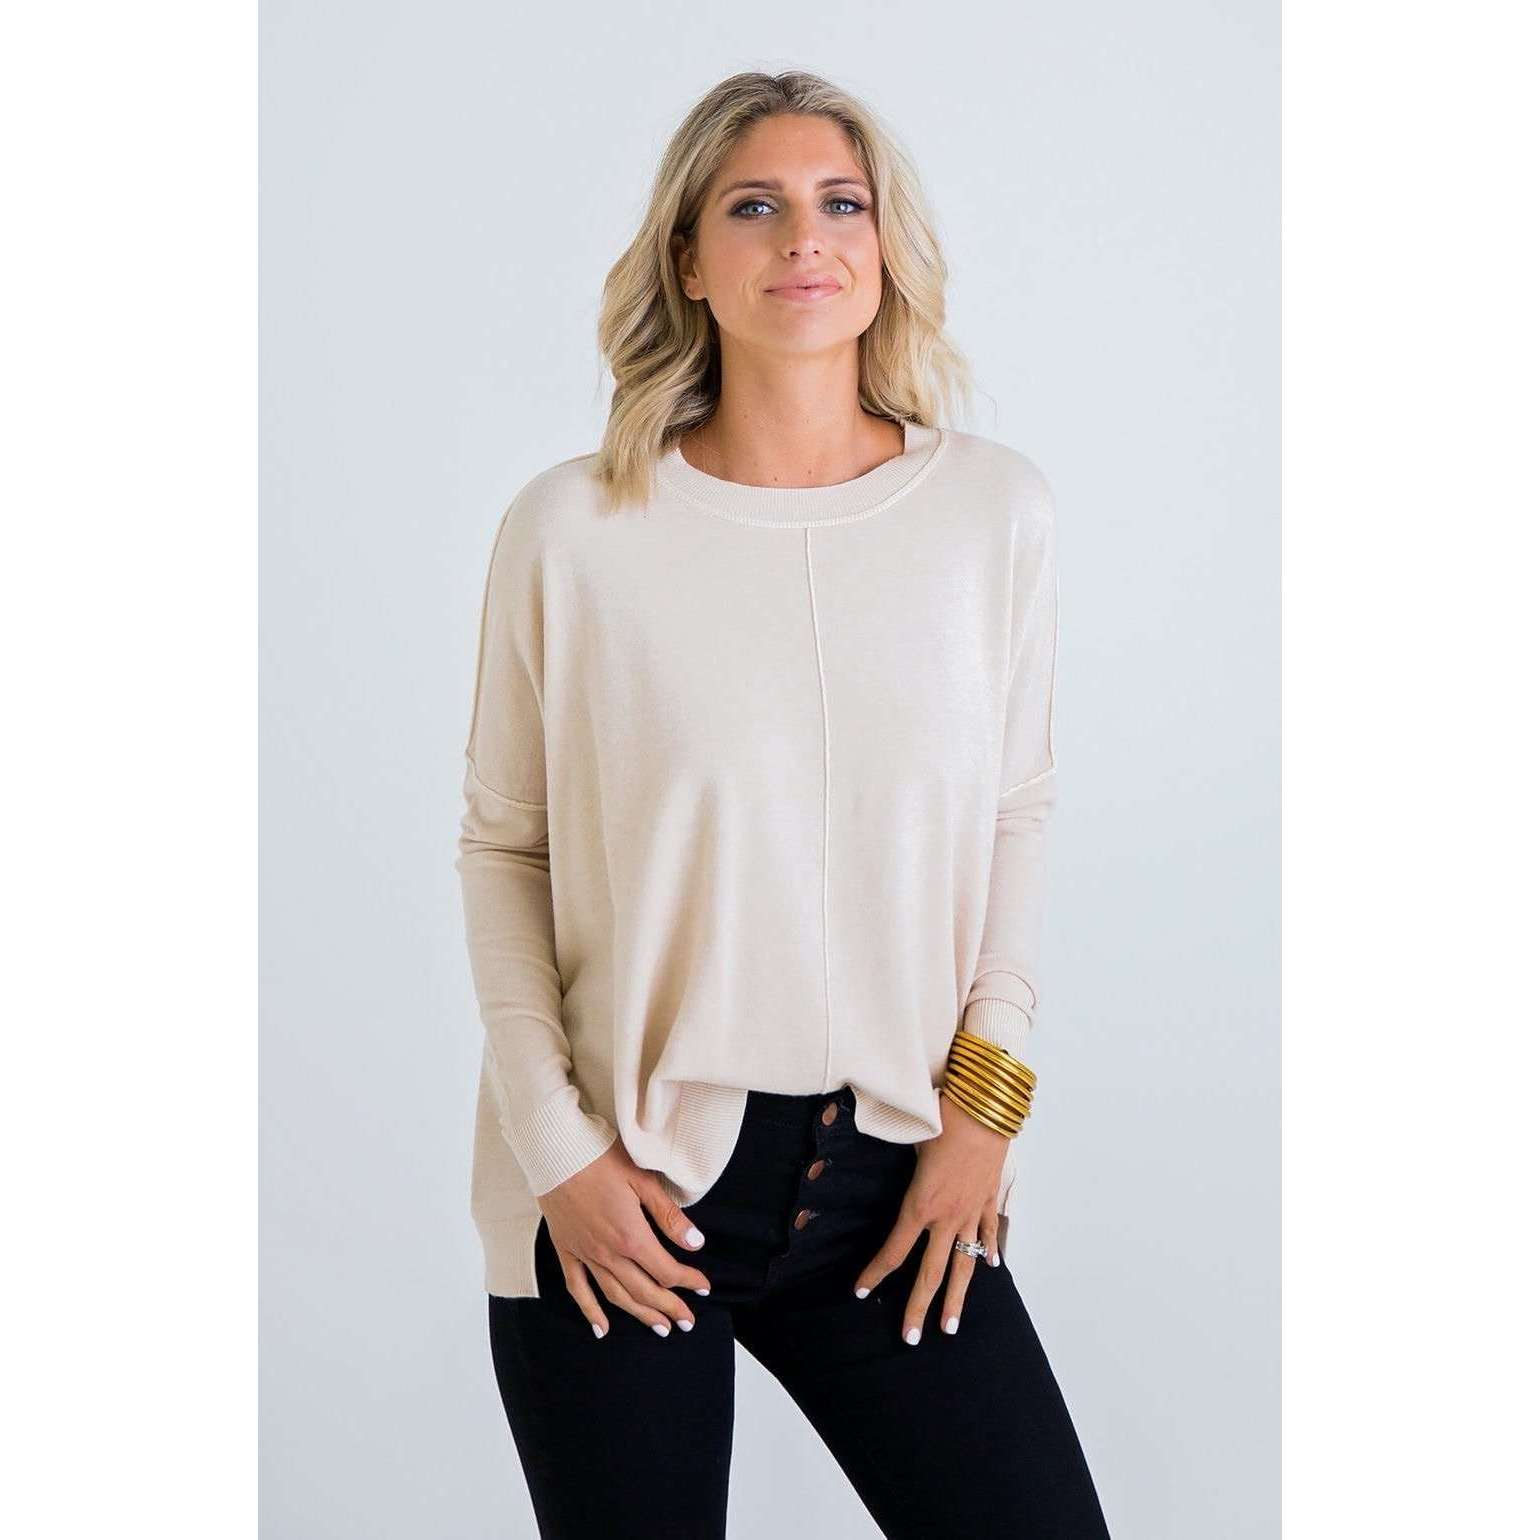 8.28 Boutique:Karlie Clothes,Karlie Clothes Falling For You Beige Sweater,Top